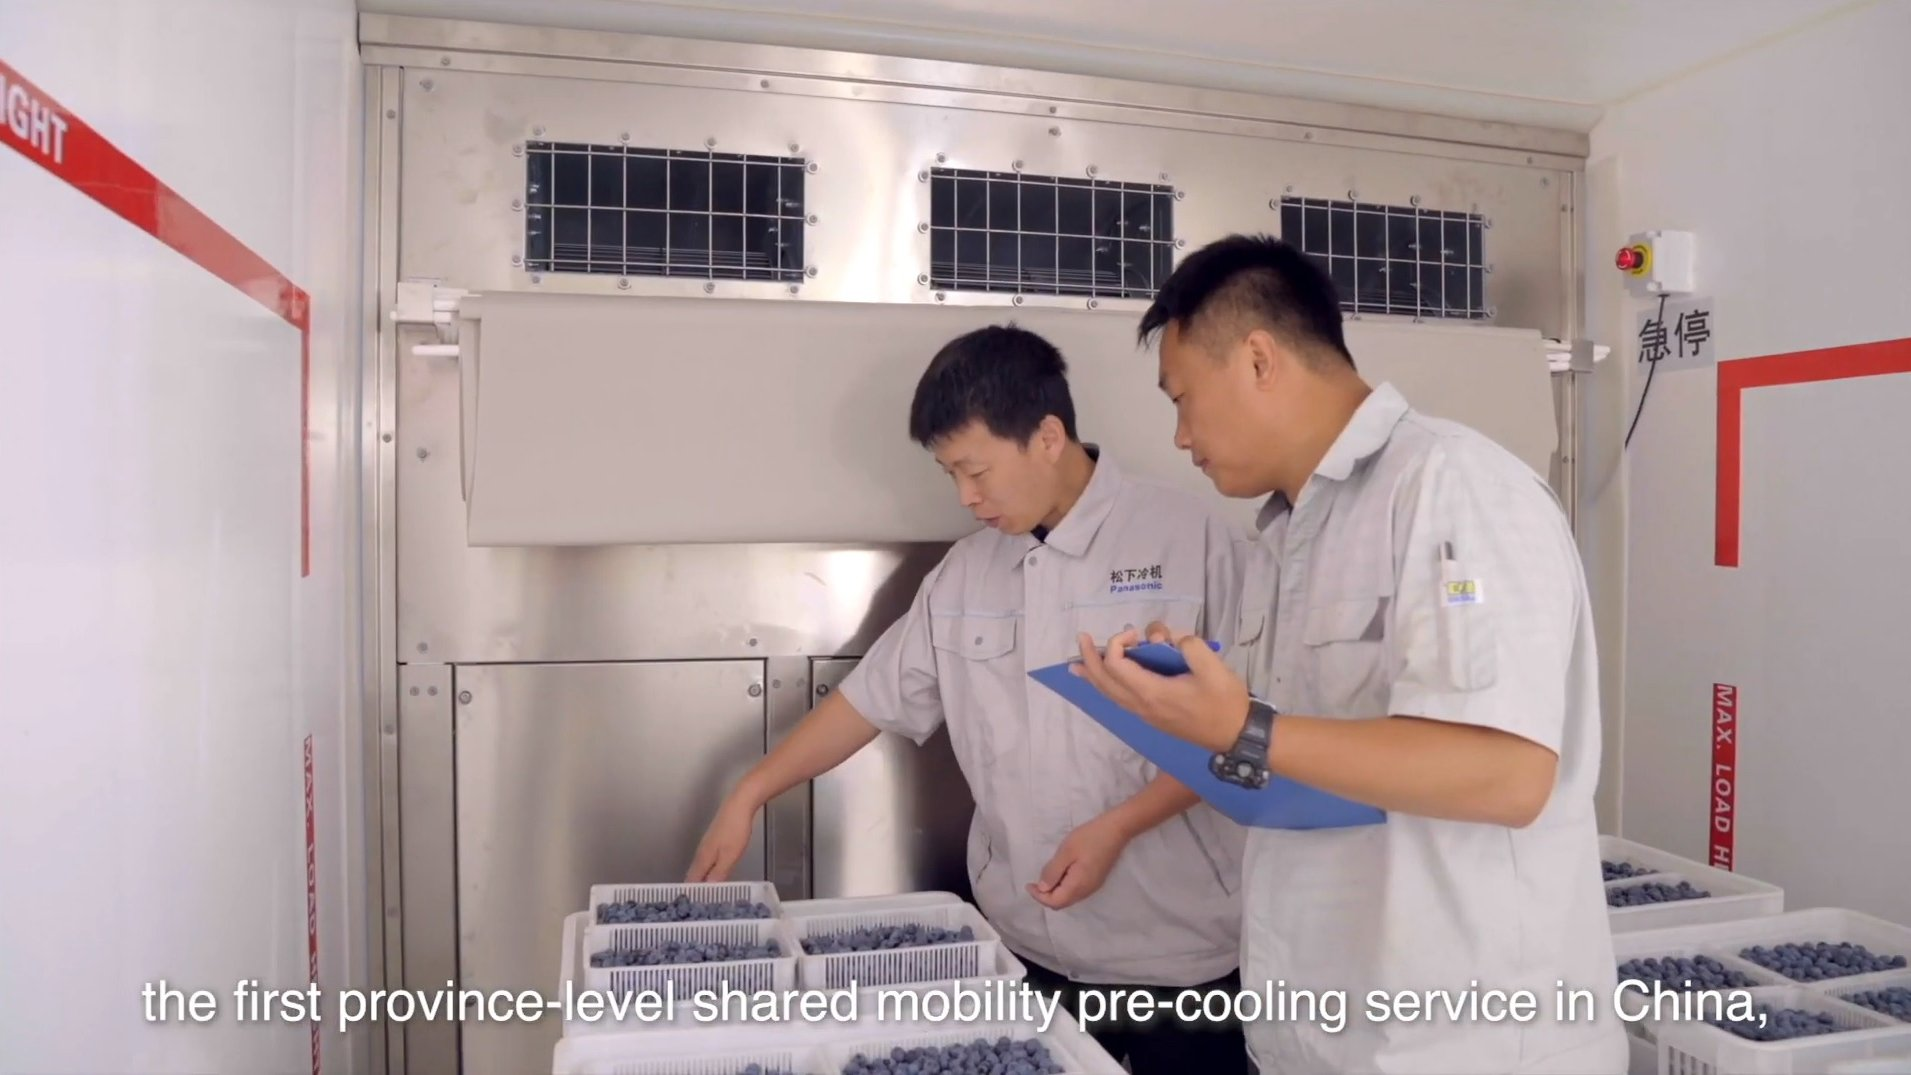 Photo: Cold Chain Solutions in Guizhou, China